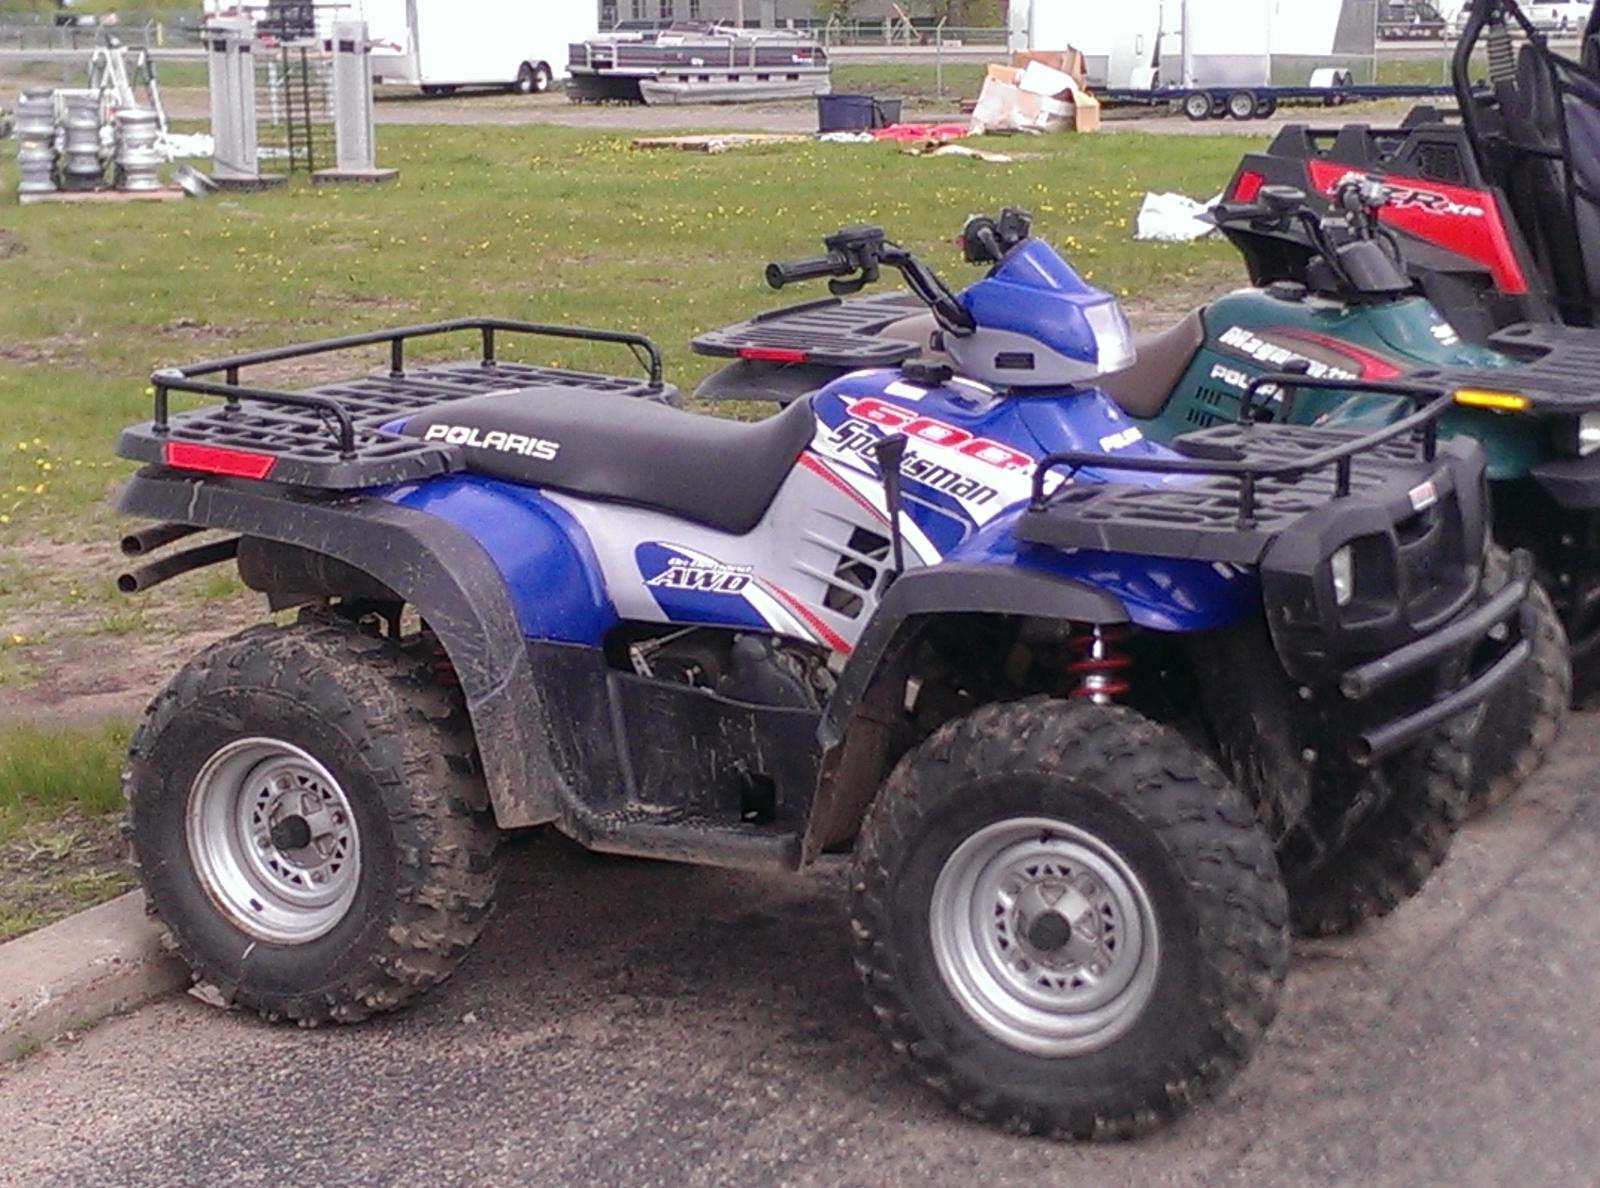 2004 polaris sportsman 600 review